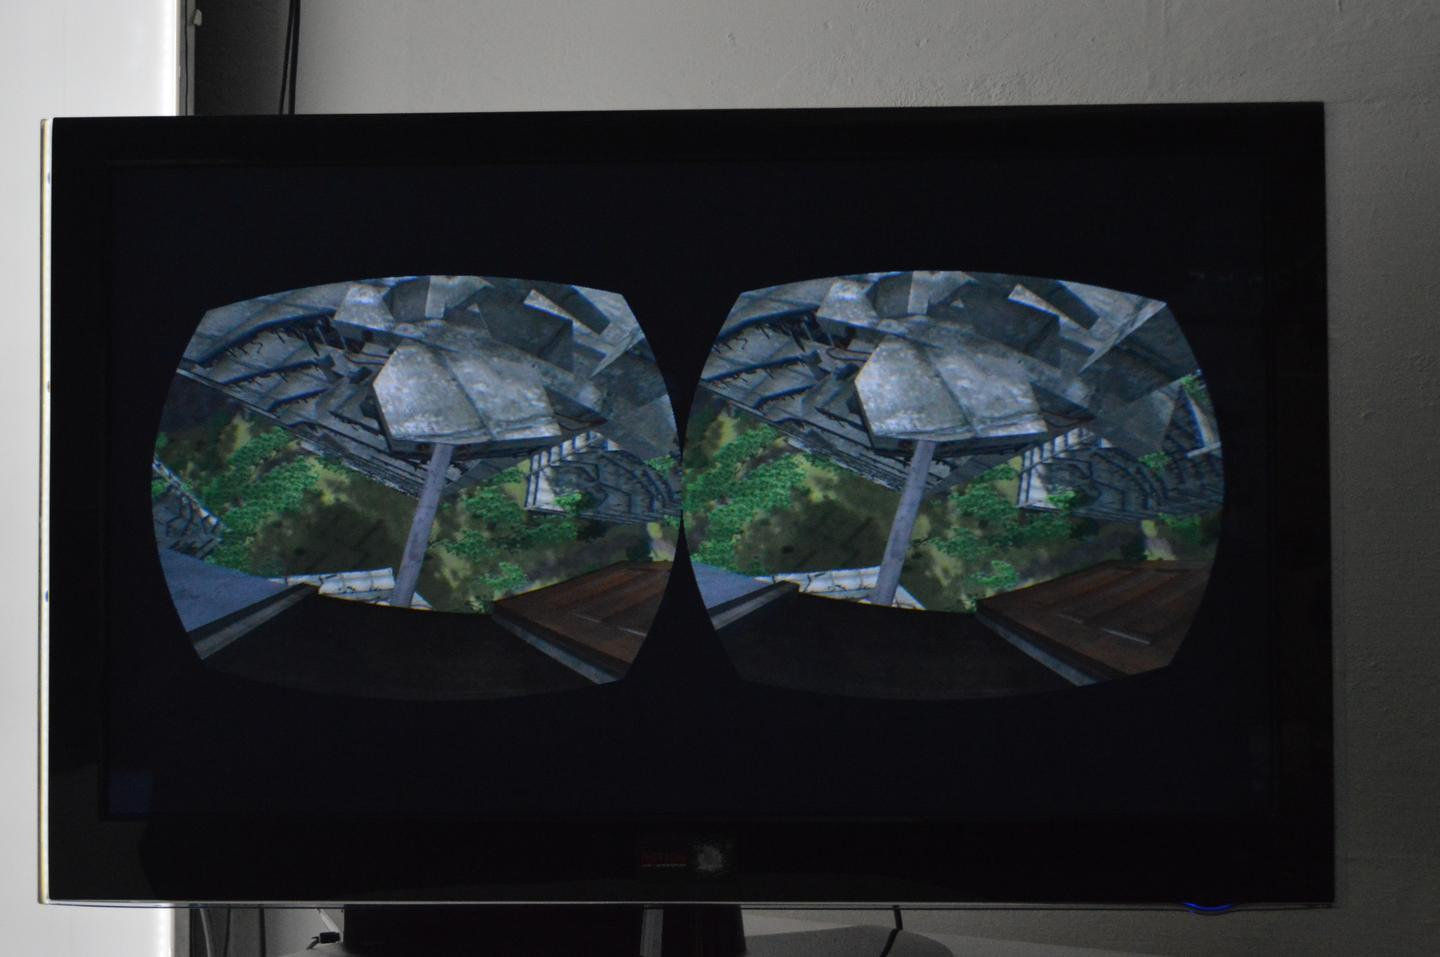 The two eyepieces of the Oculus Rift displayed side by side on a screen (Photo: Gizmag)